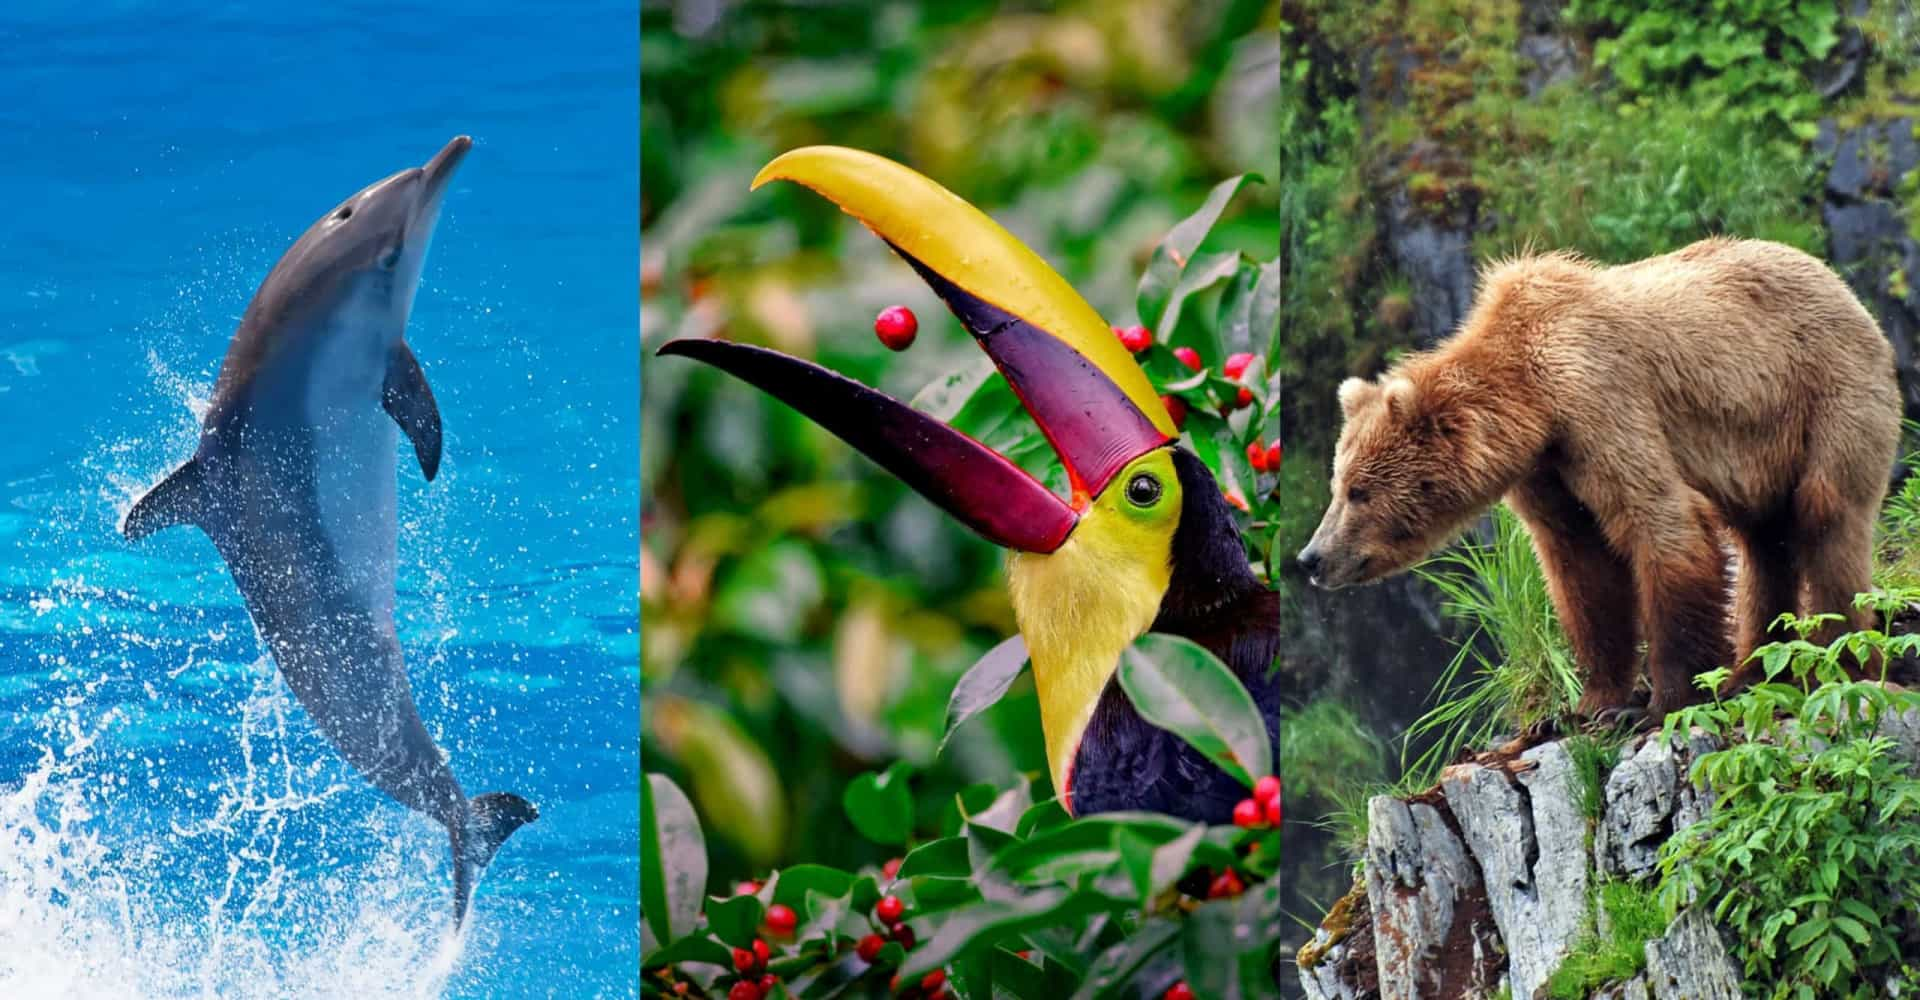 World Wildlife Day: 55 fun facts about wildlife that will surprise and delight you